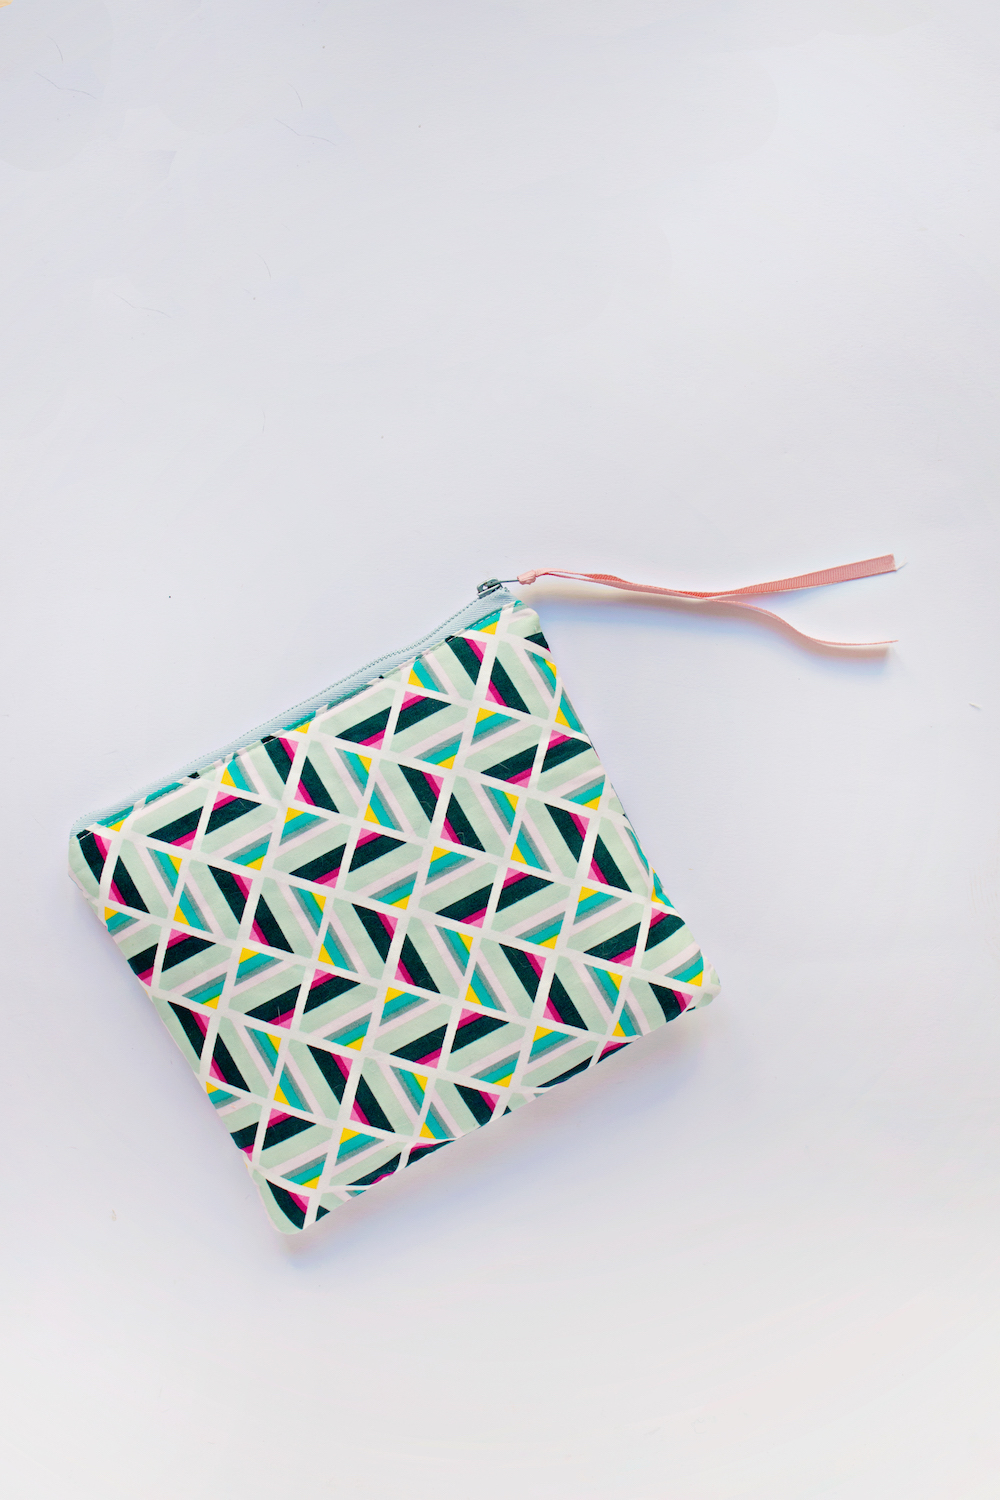 Geometric Printed Zipper Pouch